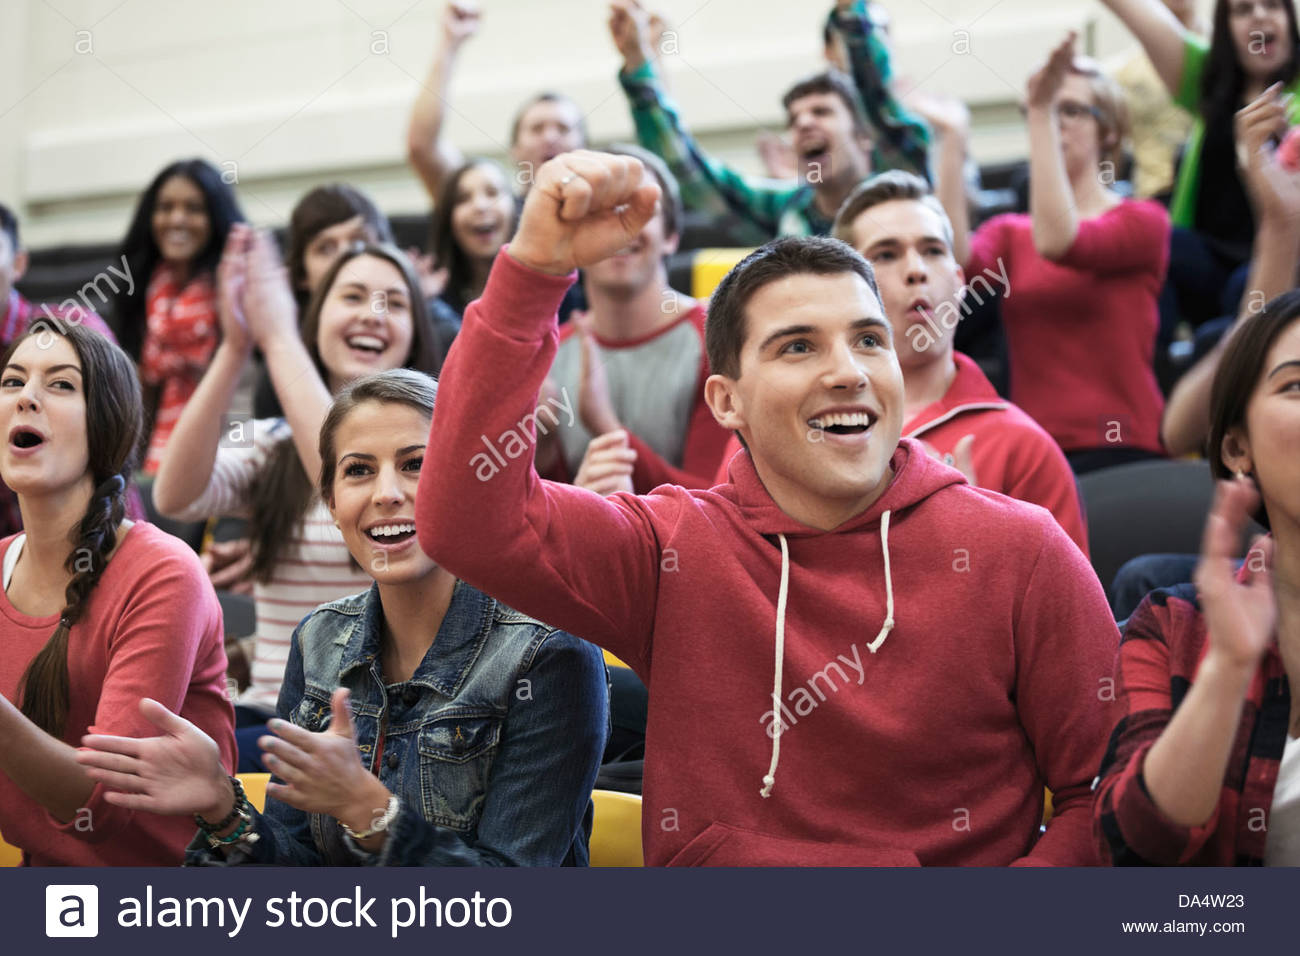 Large group of students cheering at college sporting event - Stock Image